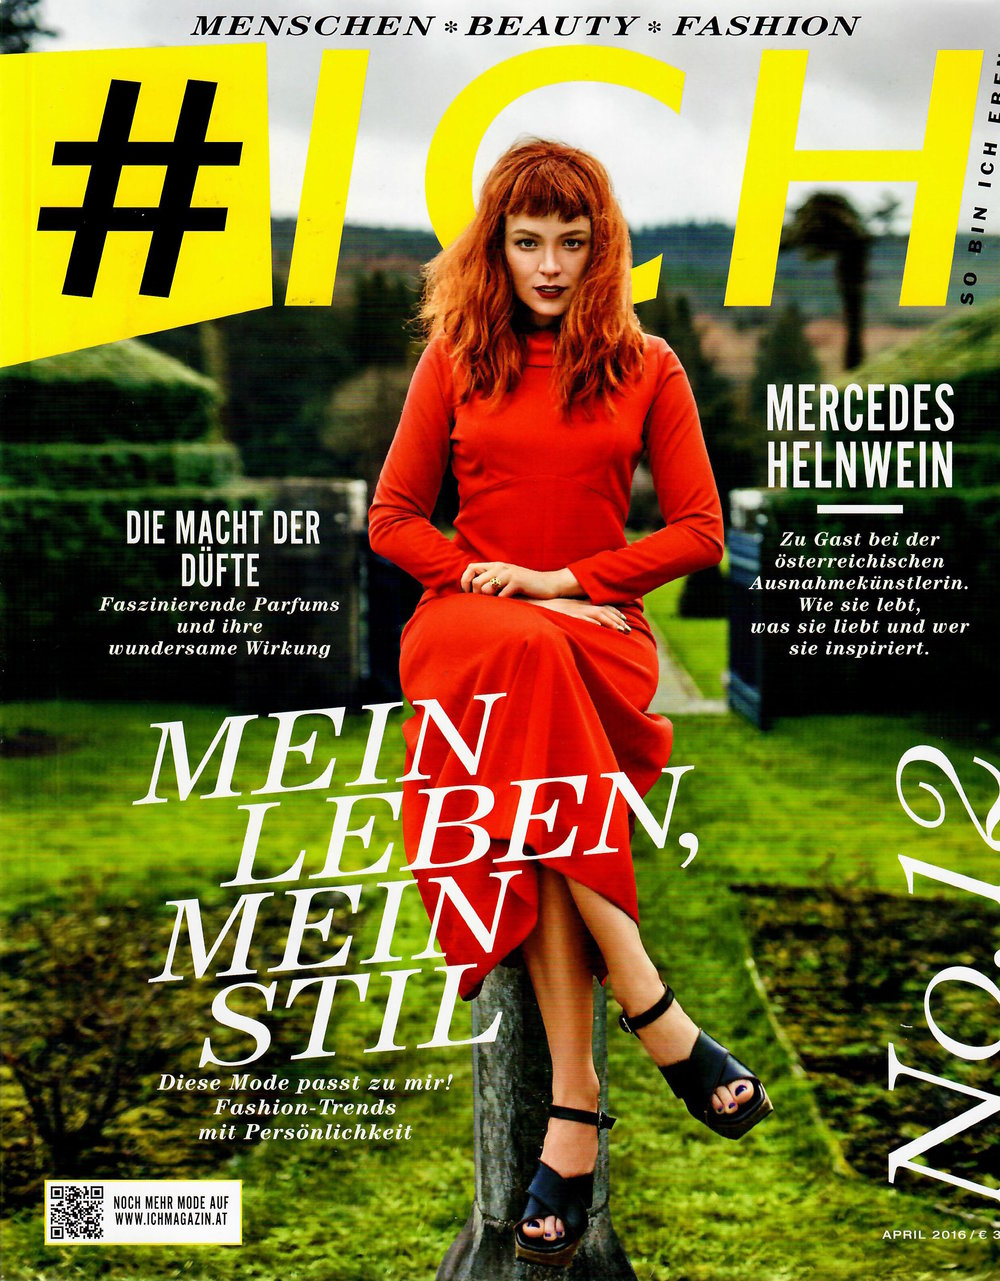 ICH Menschen Beauty Fashion, April 2016